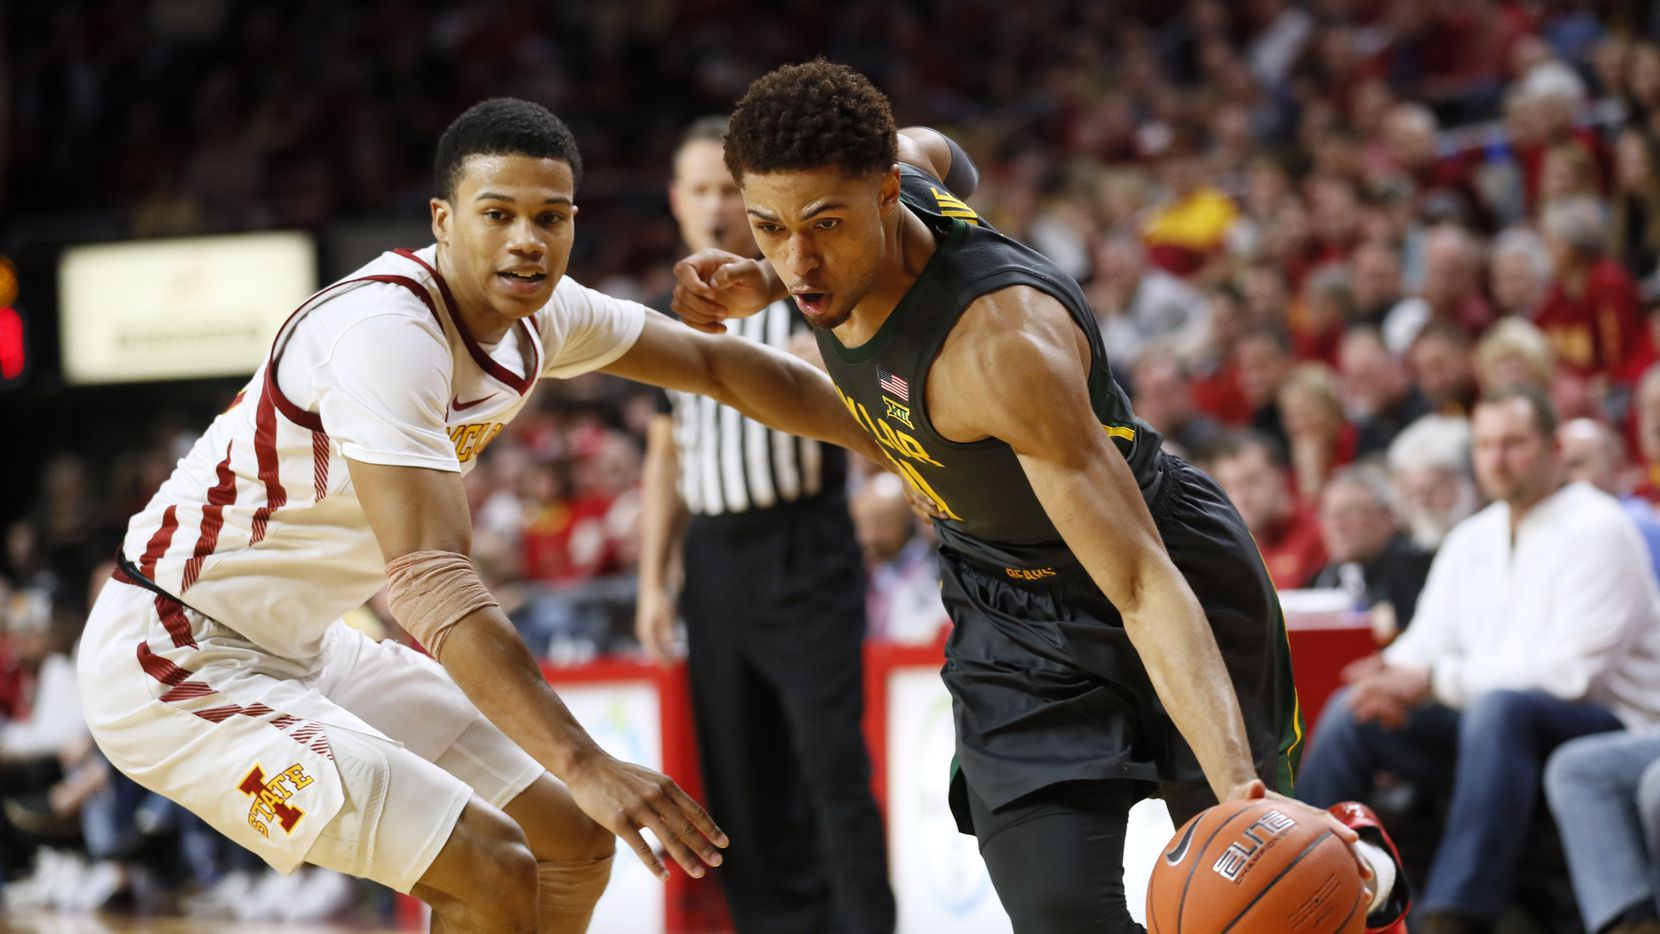 Baylor guard MaCio Teague drives past Iowa State guard Rasir Bolton, left, during the second half of an NCAA college basketball game Wednesday, Jan. 29, 2020, in Ames, Iowa. Baylor won 67-53.